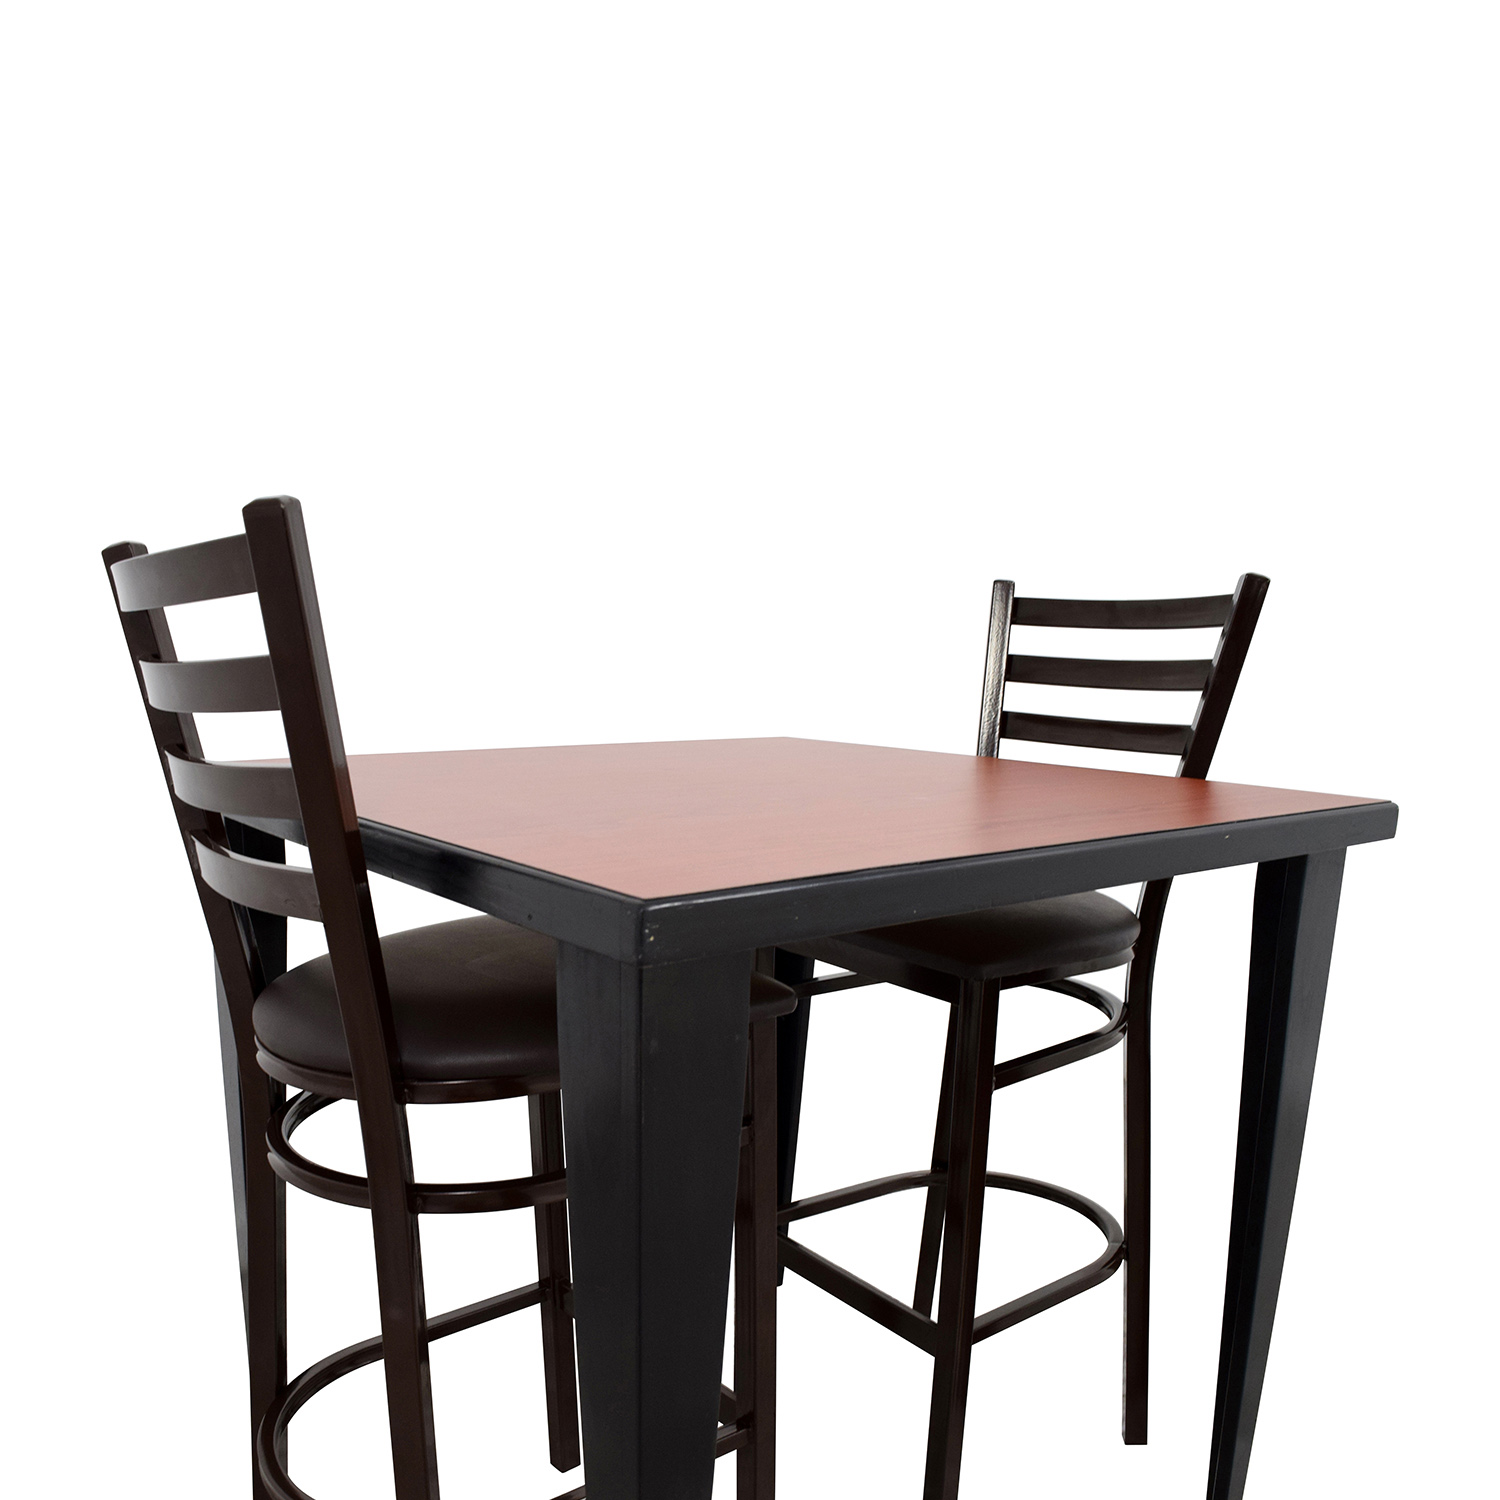 76 off counter height kitchen table and two chairs tables for Kitchen table and stools